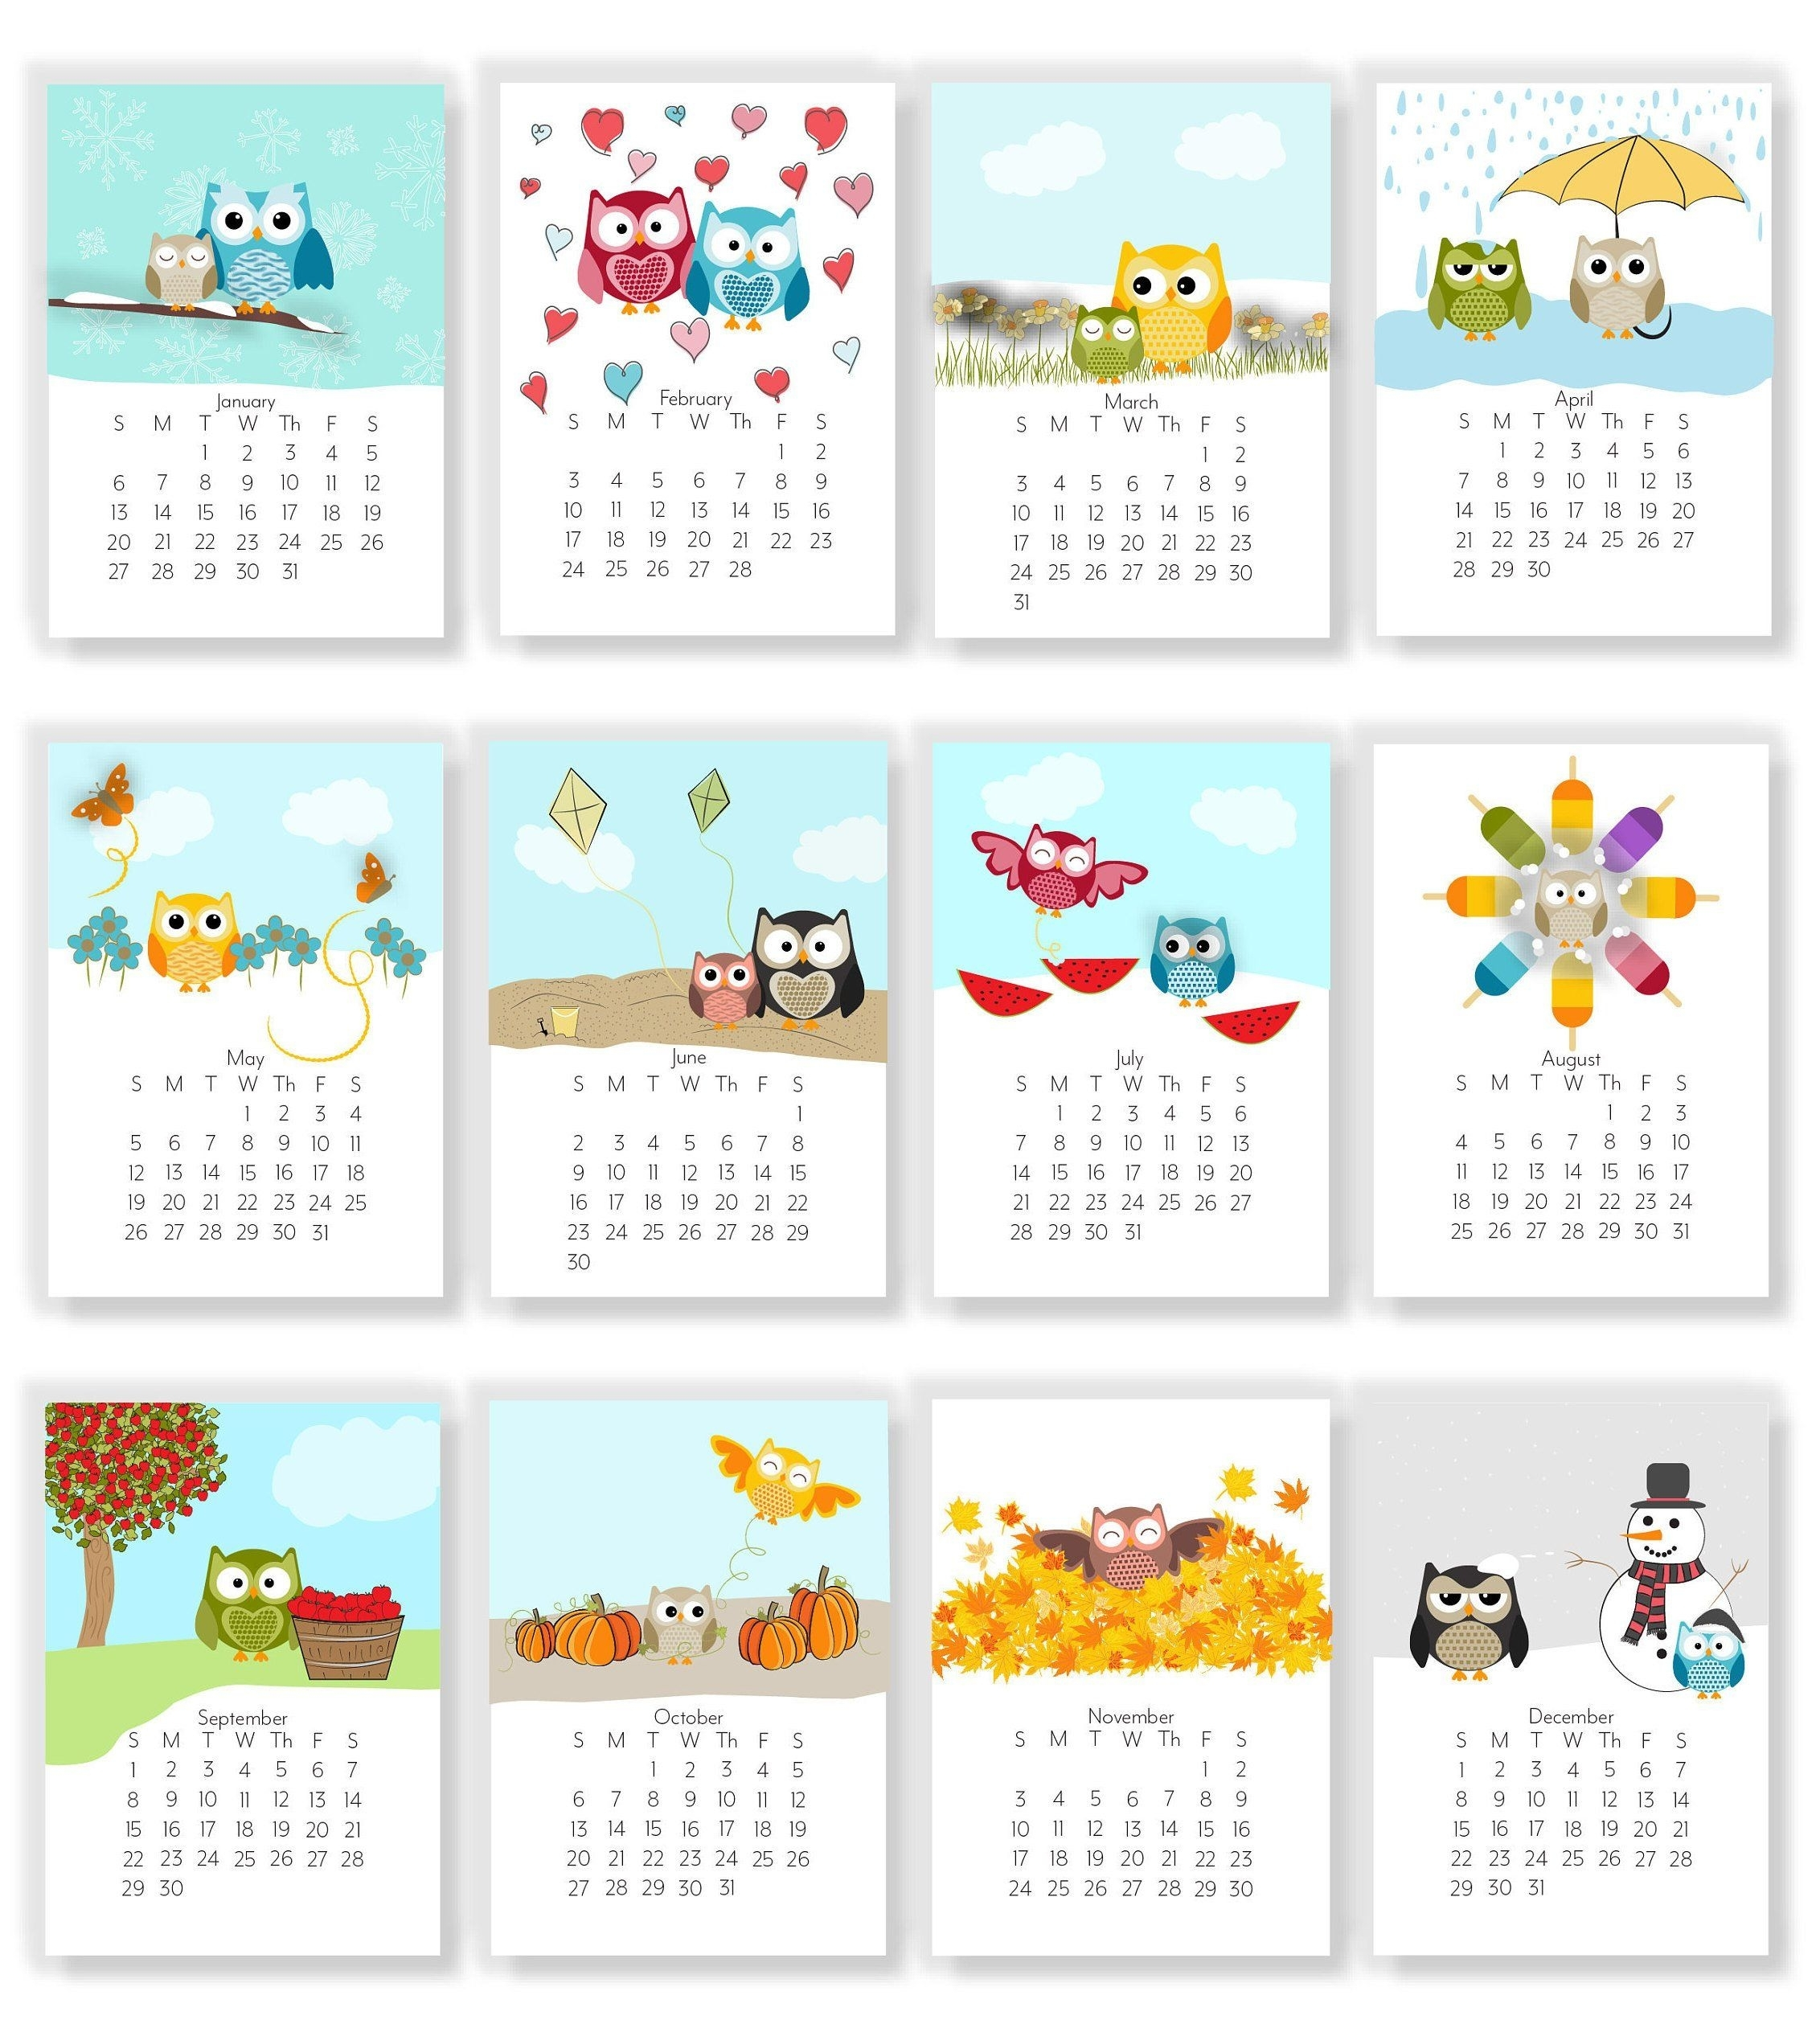 Catch Clip Art Calendar For August 2021